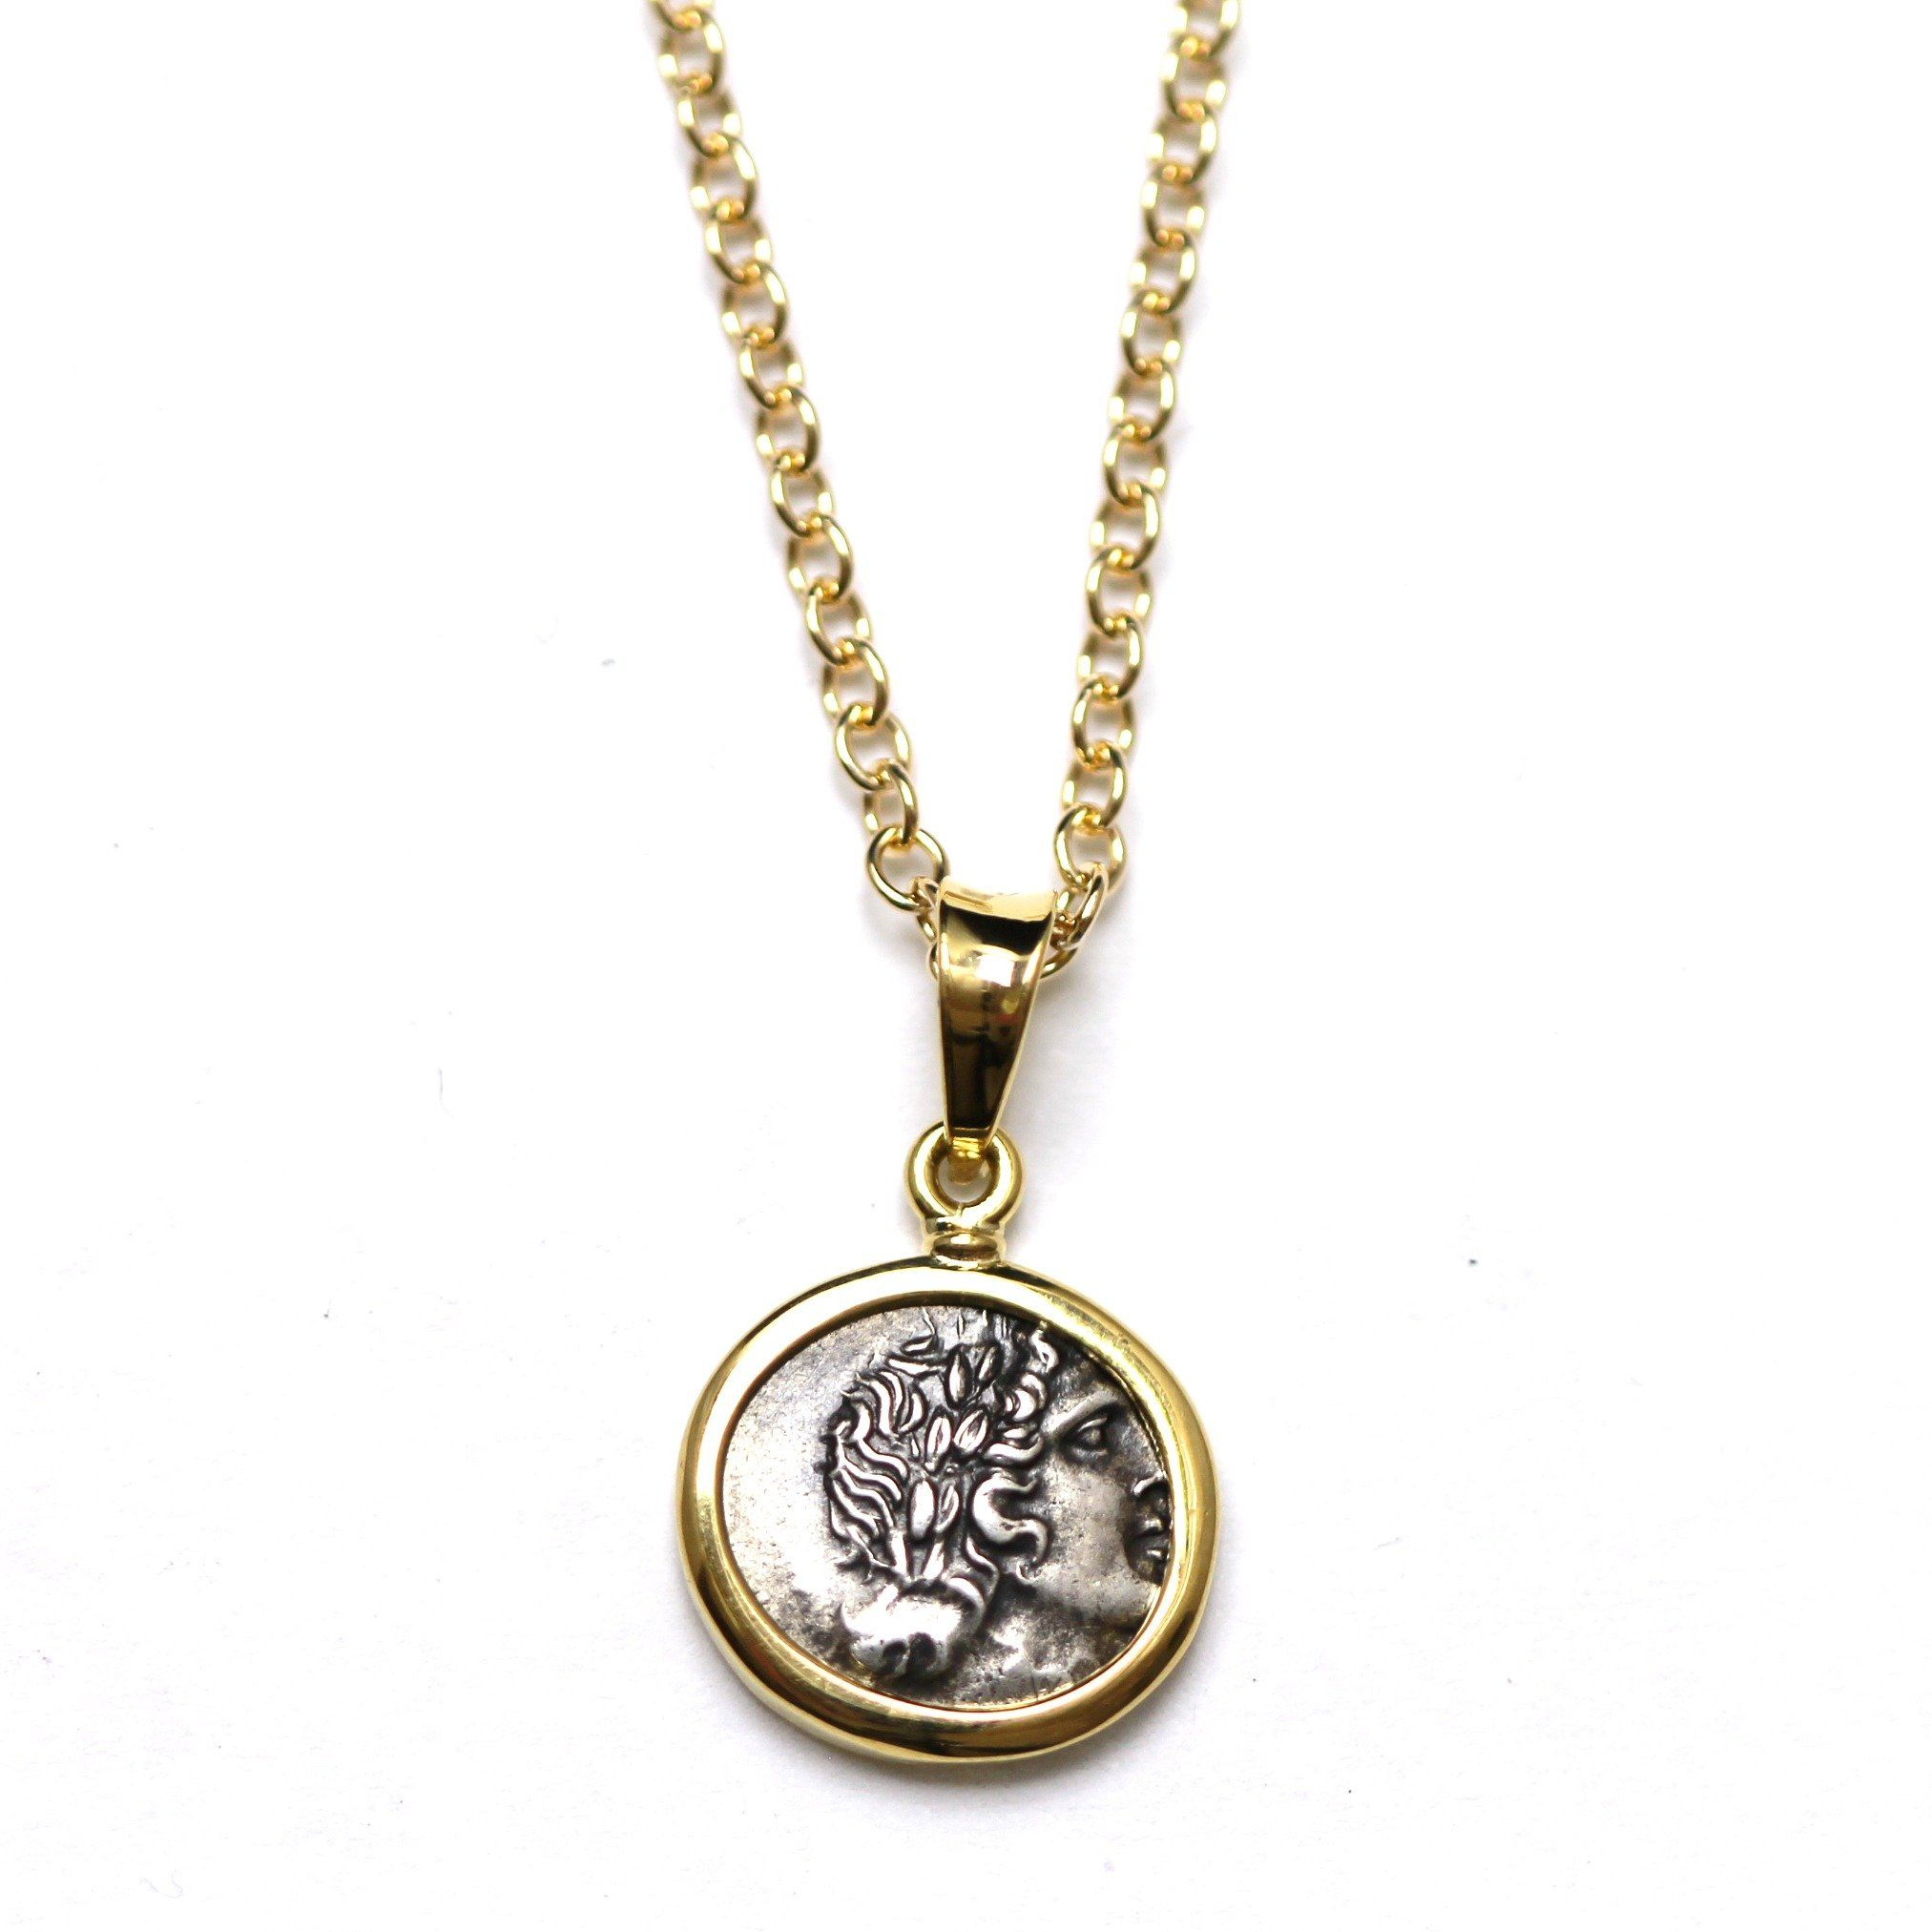 18K Gold Pendant, GF Chain, Lycian League Coin, ID13276 - Erez Ancient Coin Jewelry